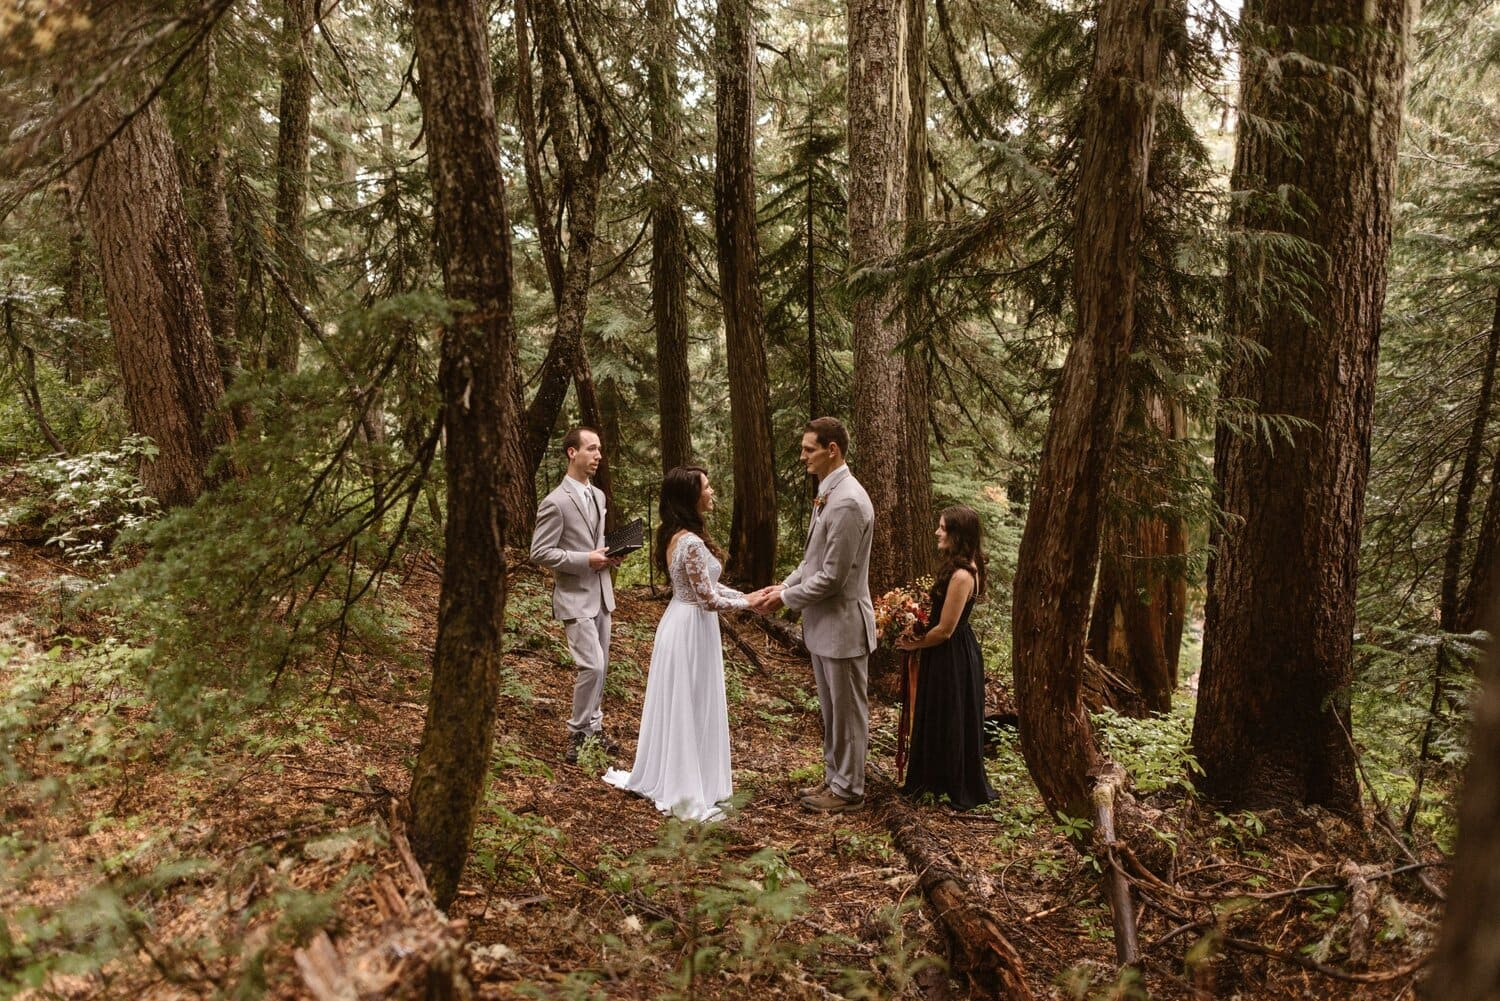 Bride and groom hold hands during their elopement ceremony while a man and woman stand on either side.